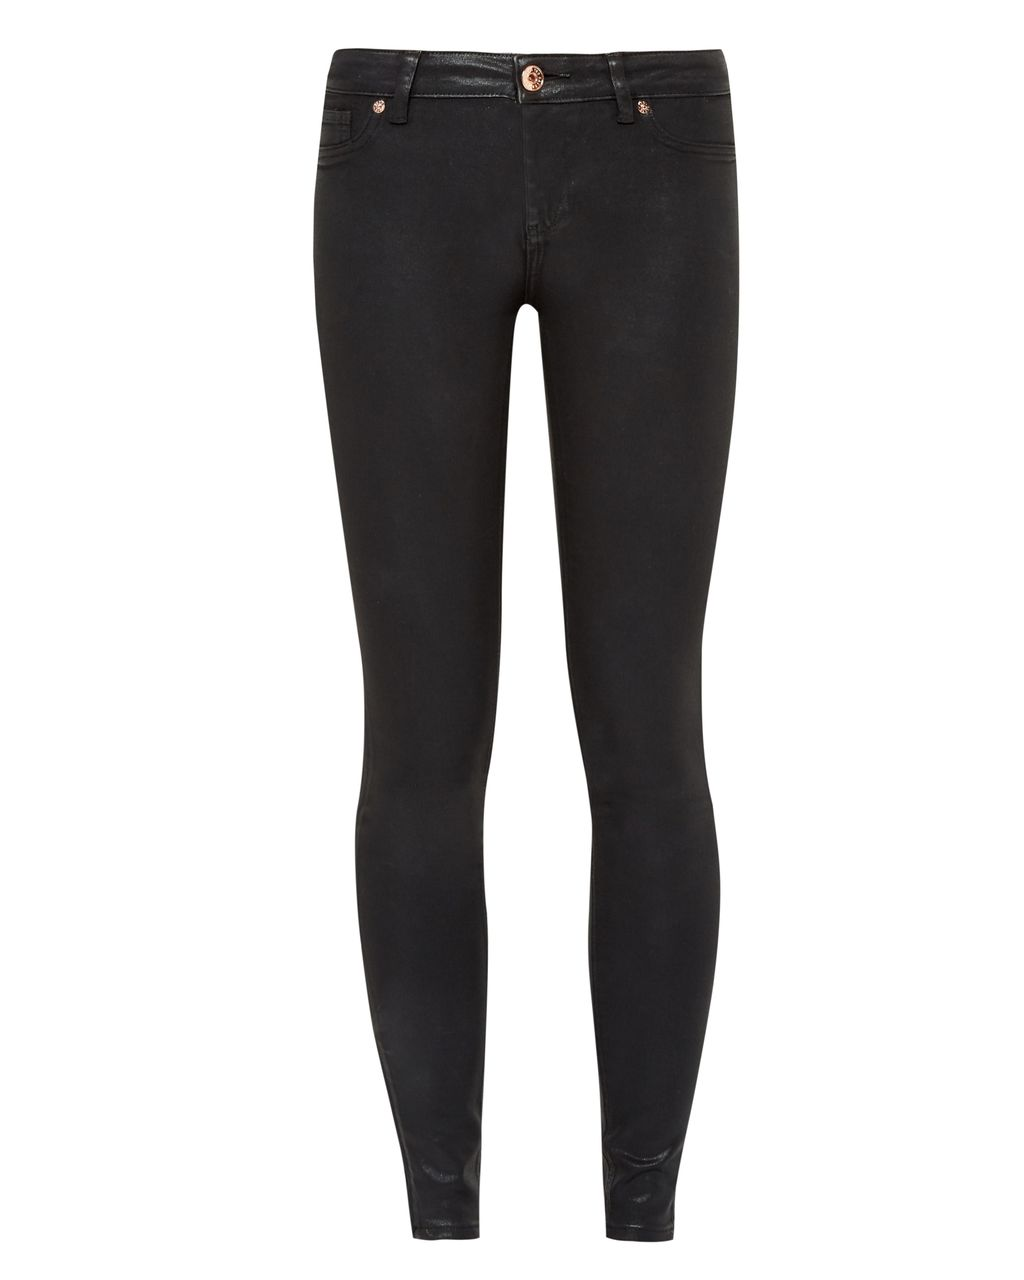 Annna Wax Finish Skinny Jeans, Black - style: skinny leg; length: standard; pattern: plain; pocket detail: traditional 5 pocket; waist: mid/regular rise; predominant colour: black; occasions: casual; fibres: cotton - stretch; texture group: denim; pattern type: fabric; season: s/s 2016; wardrobe: basic